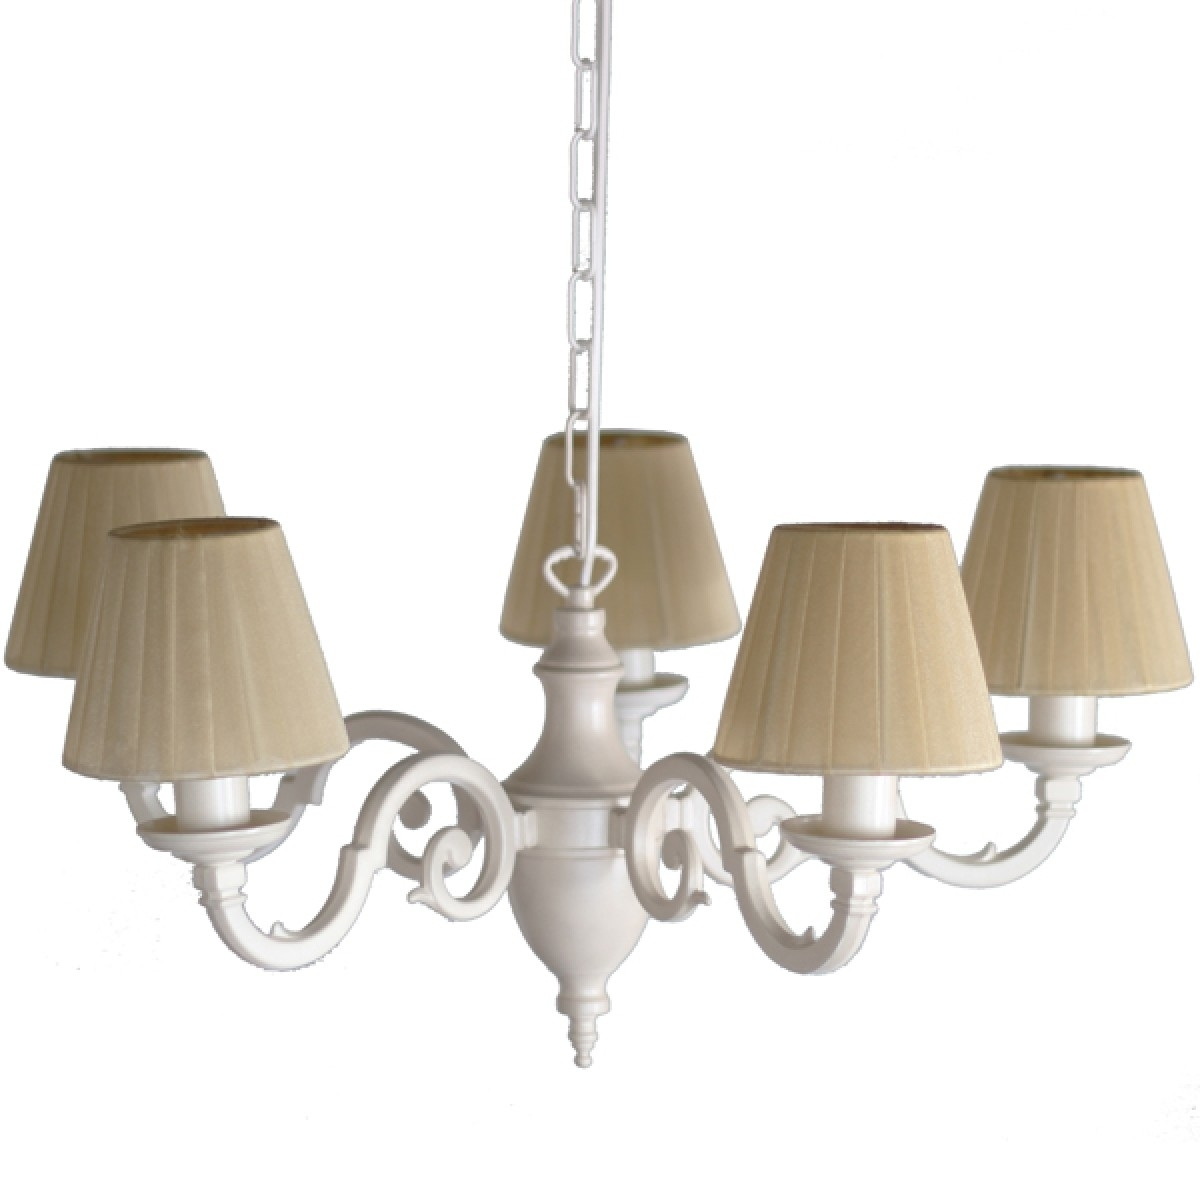 Most Up To Date Bedroom Light Fitting Chandelier With Cream Chandelier Lights (View 9 of 15)